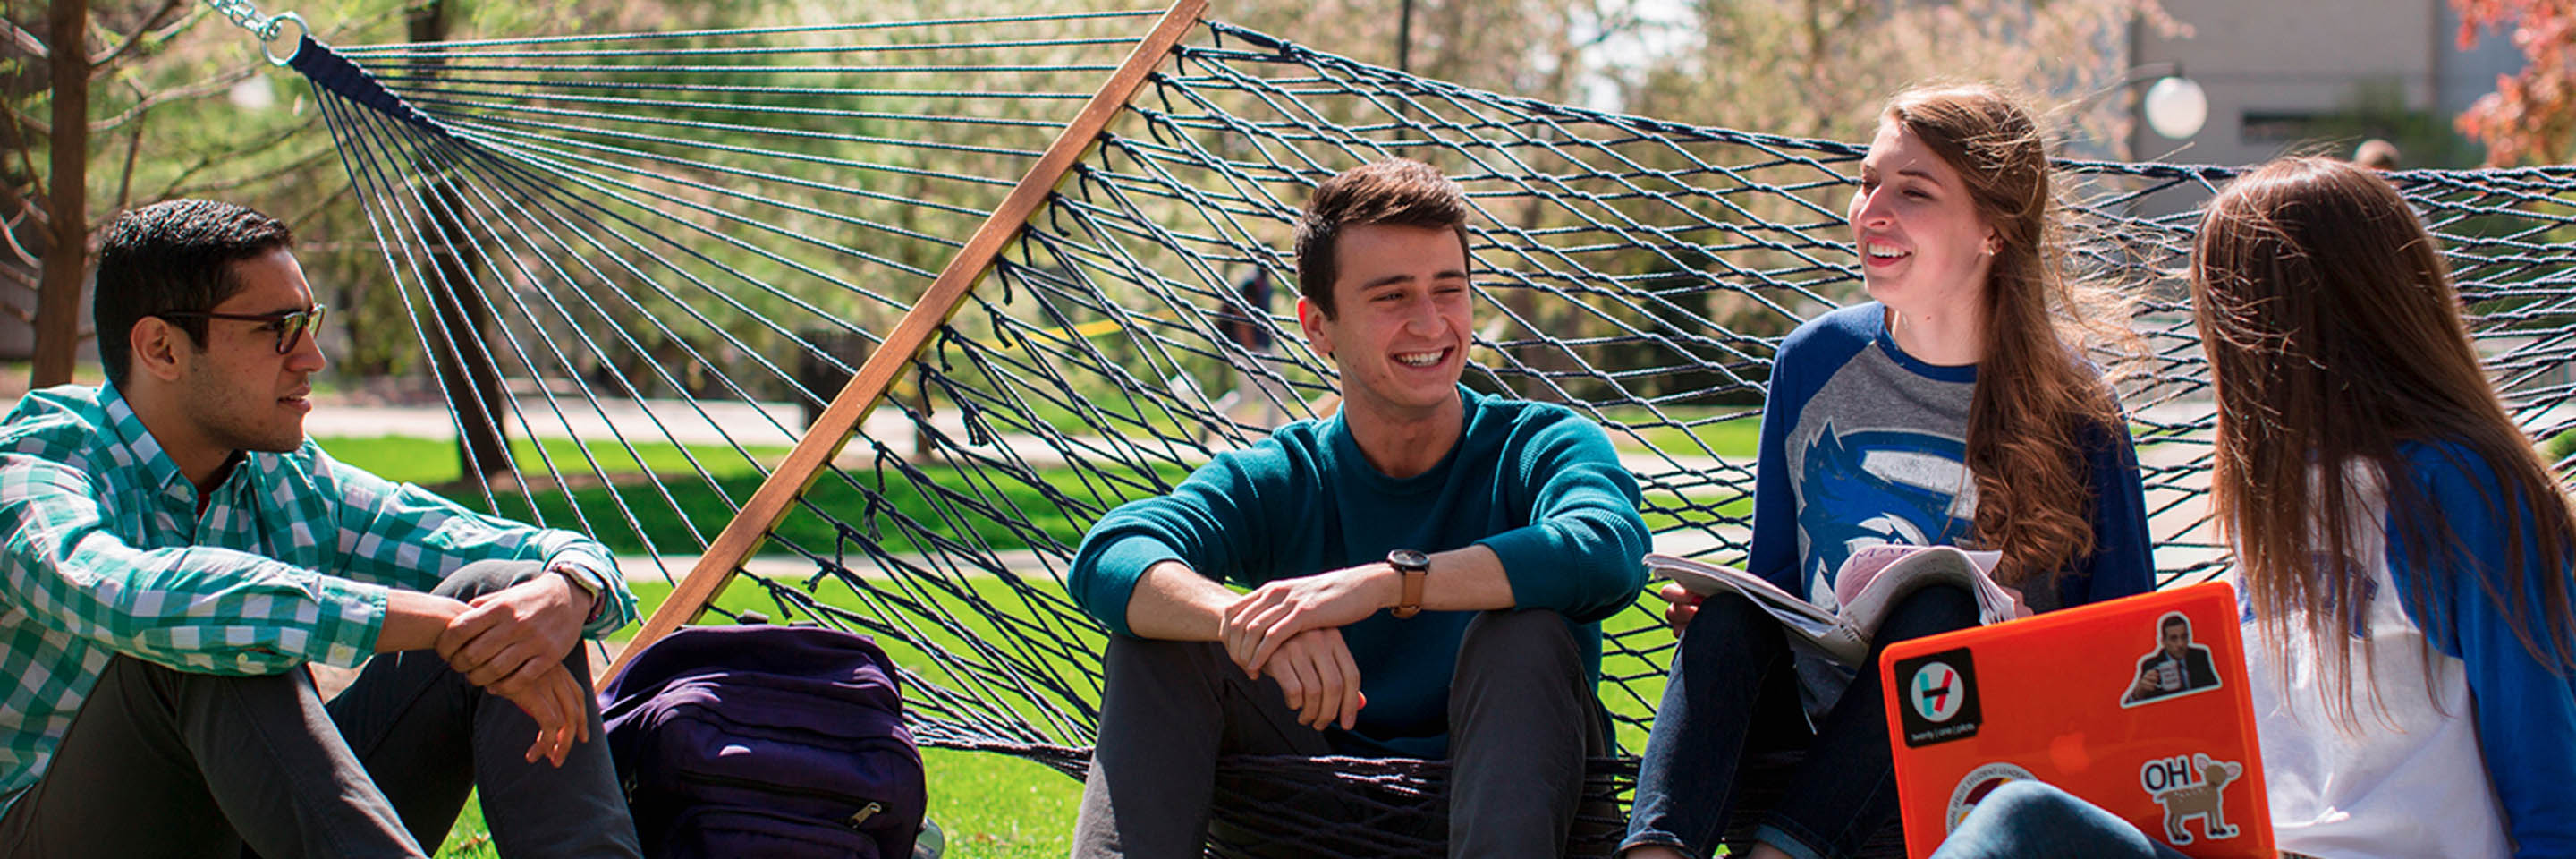 students with hammock